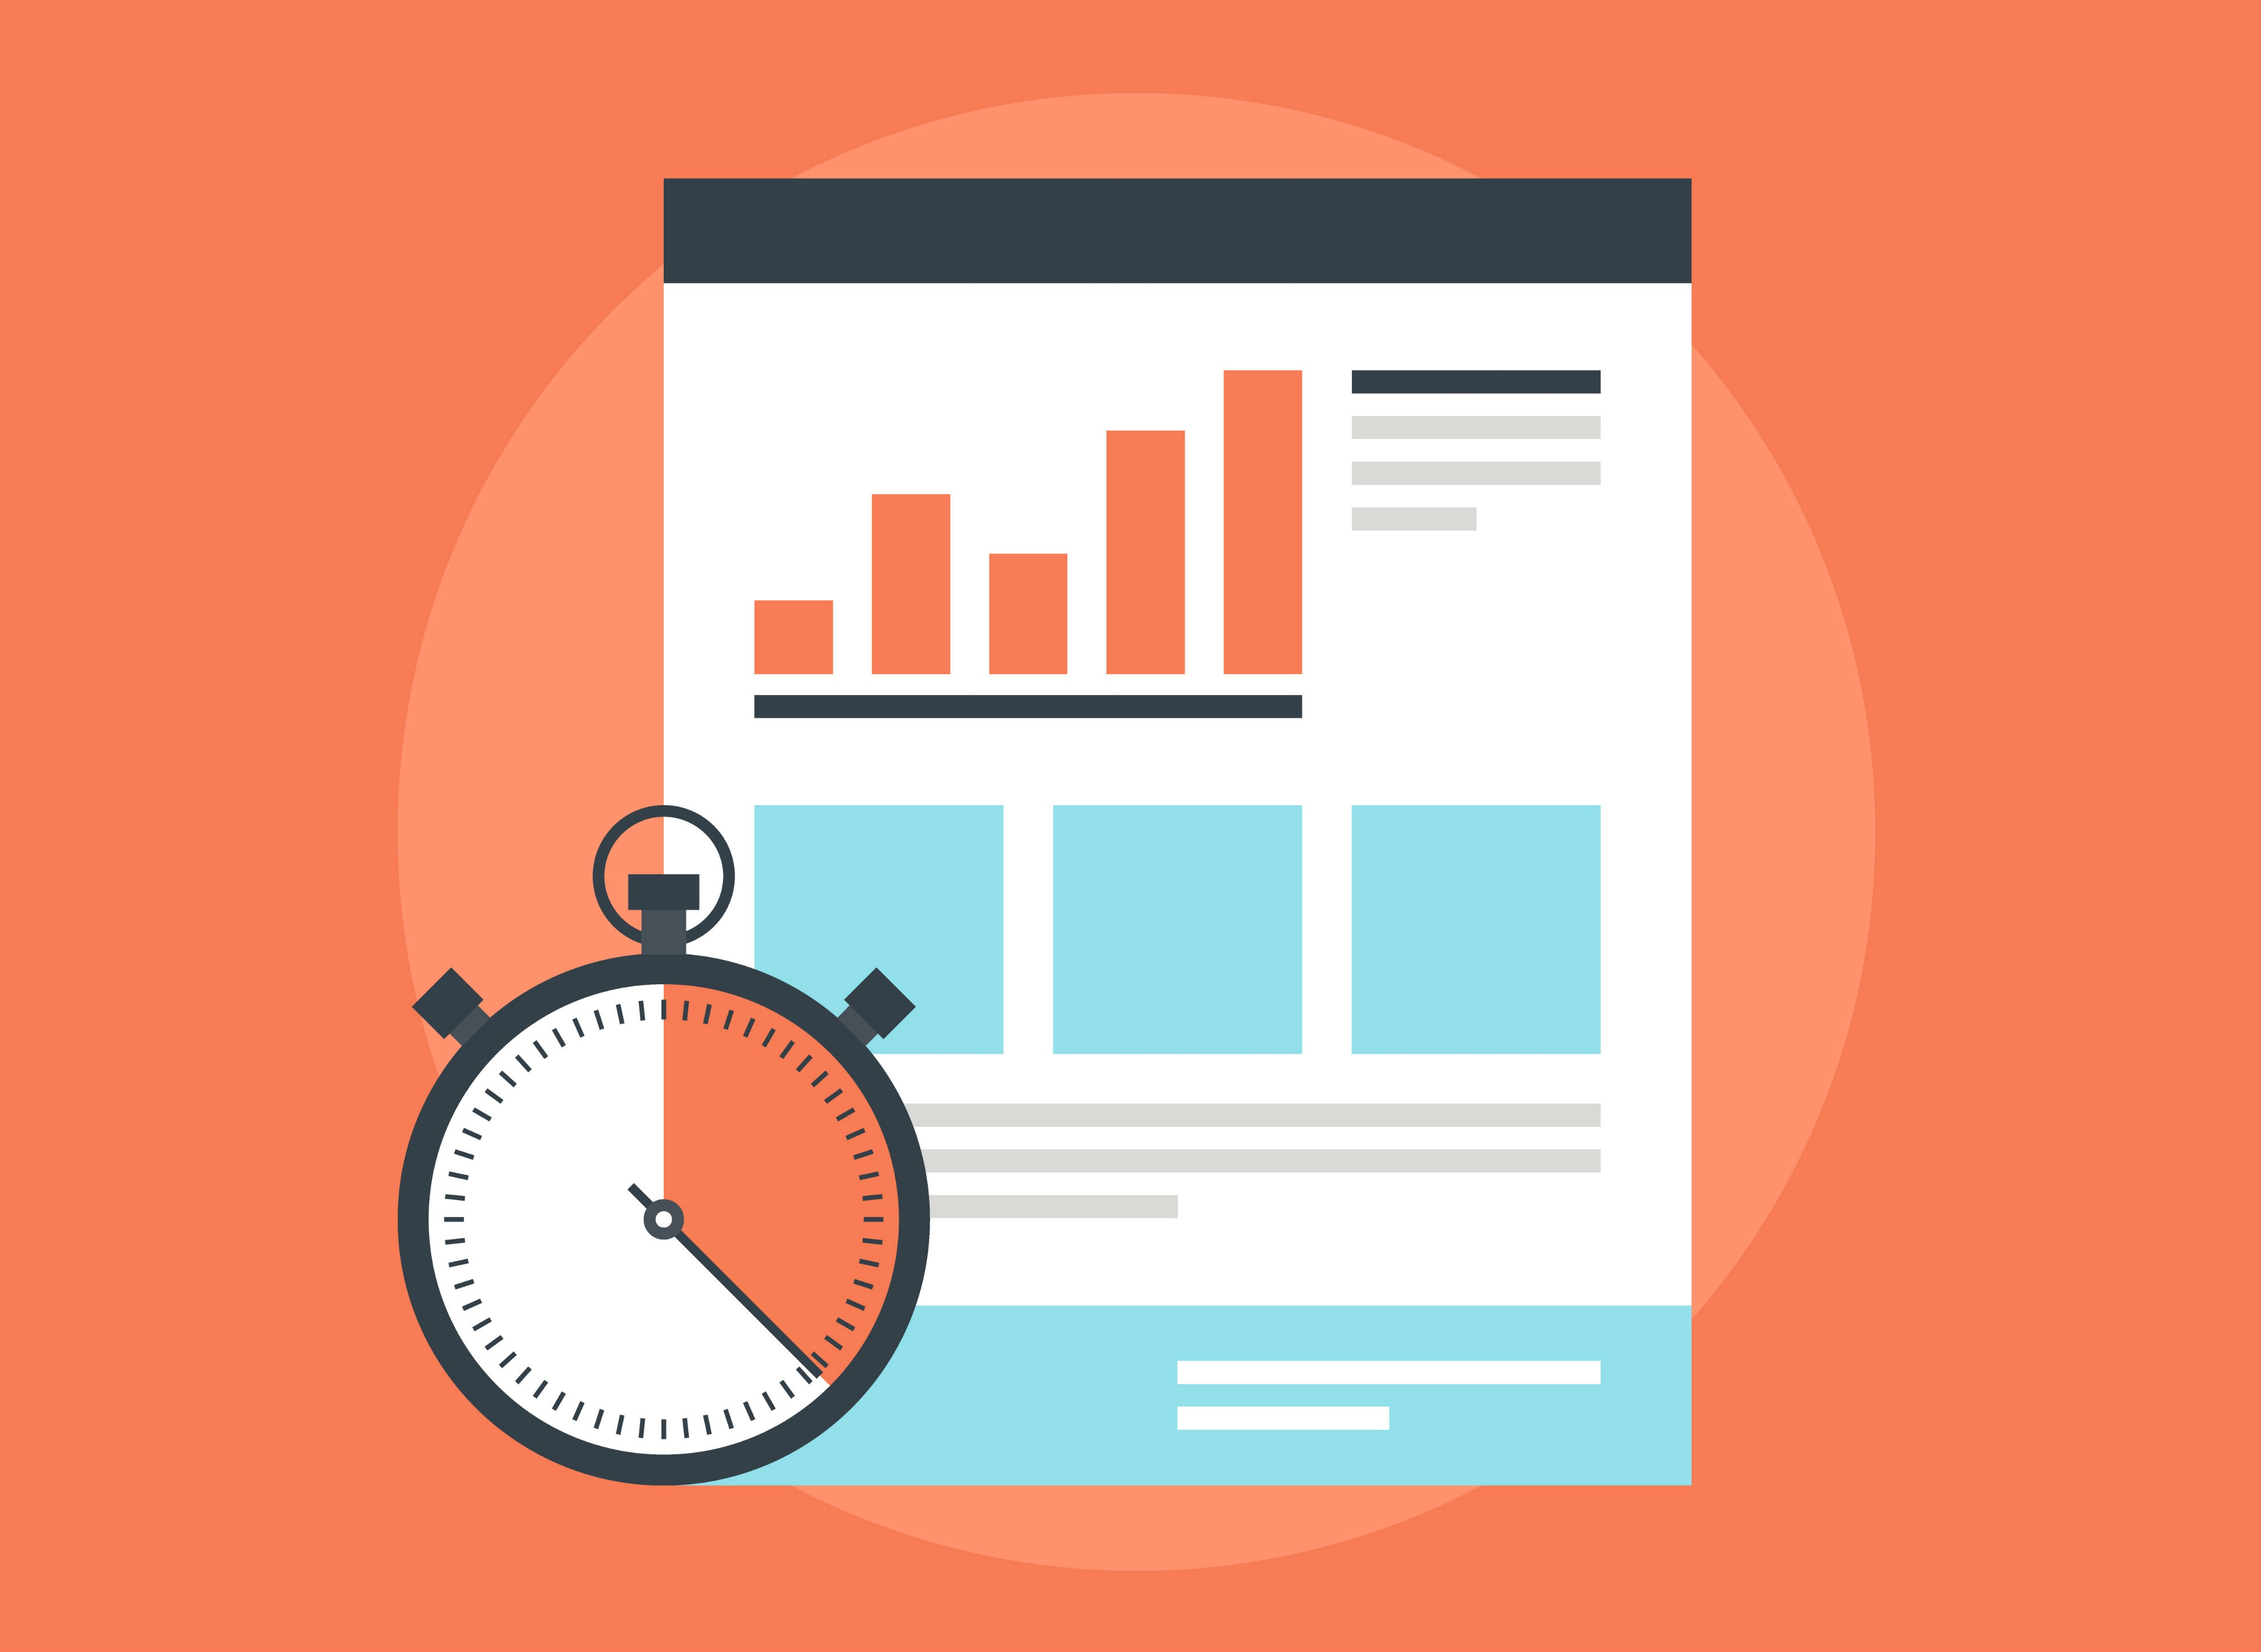 3 conversion rate optimisation tips to increase your conversion rate